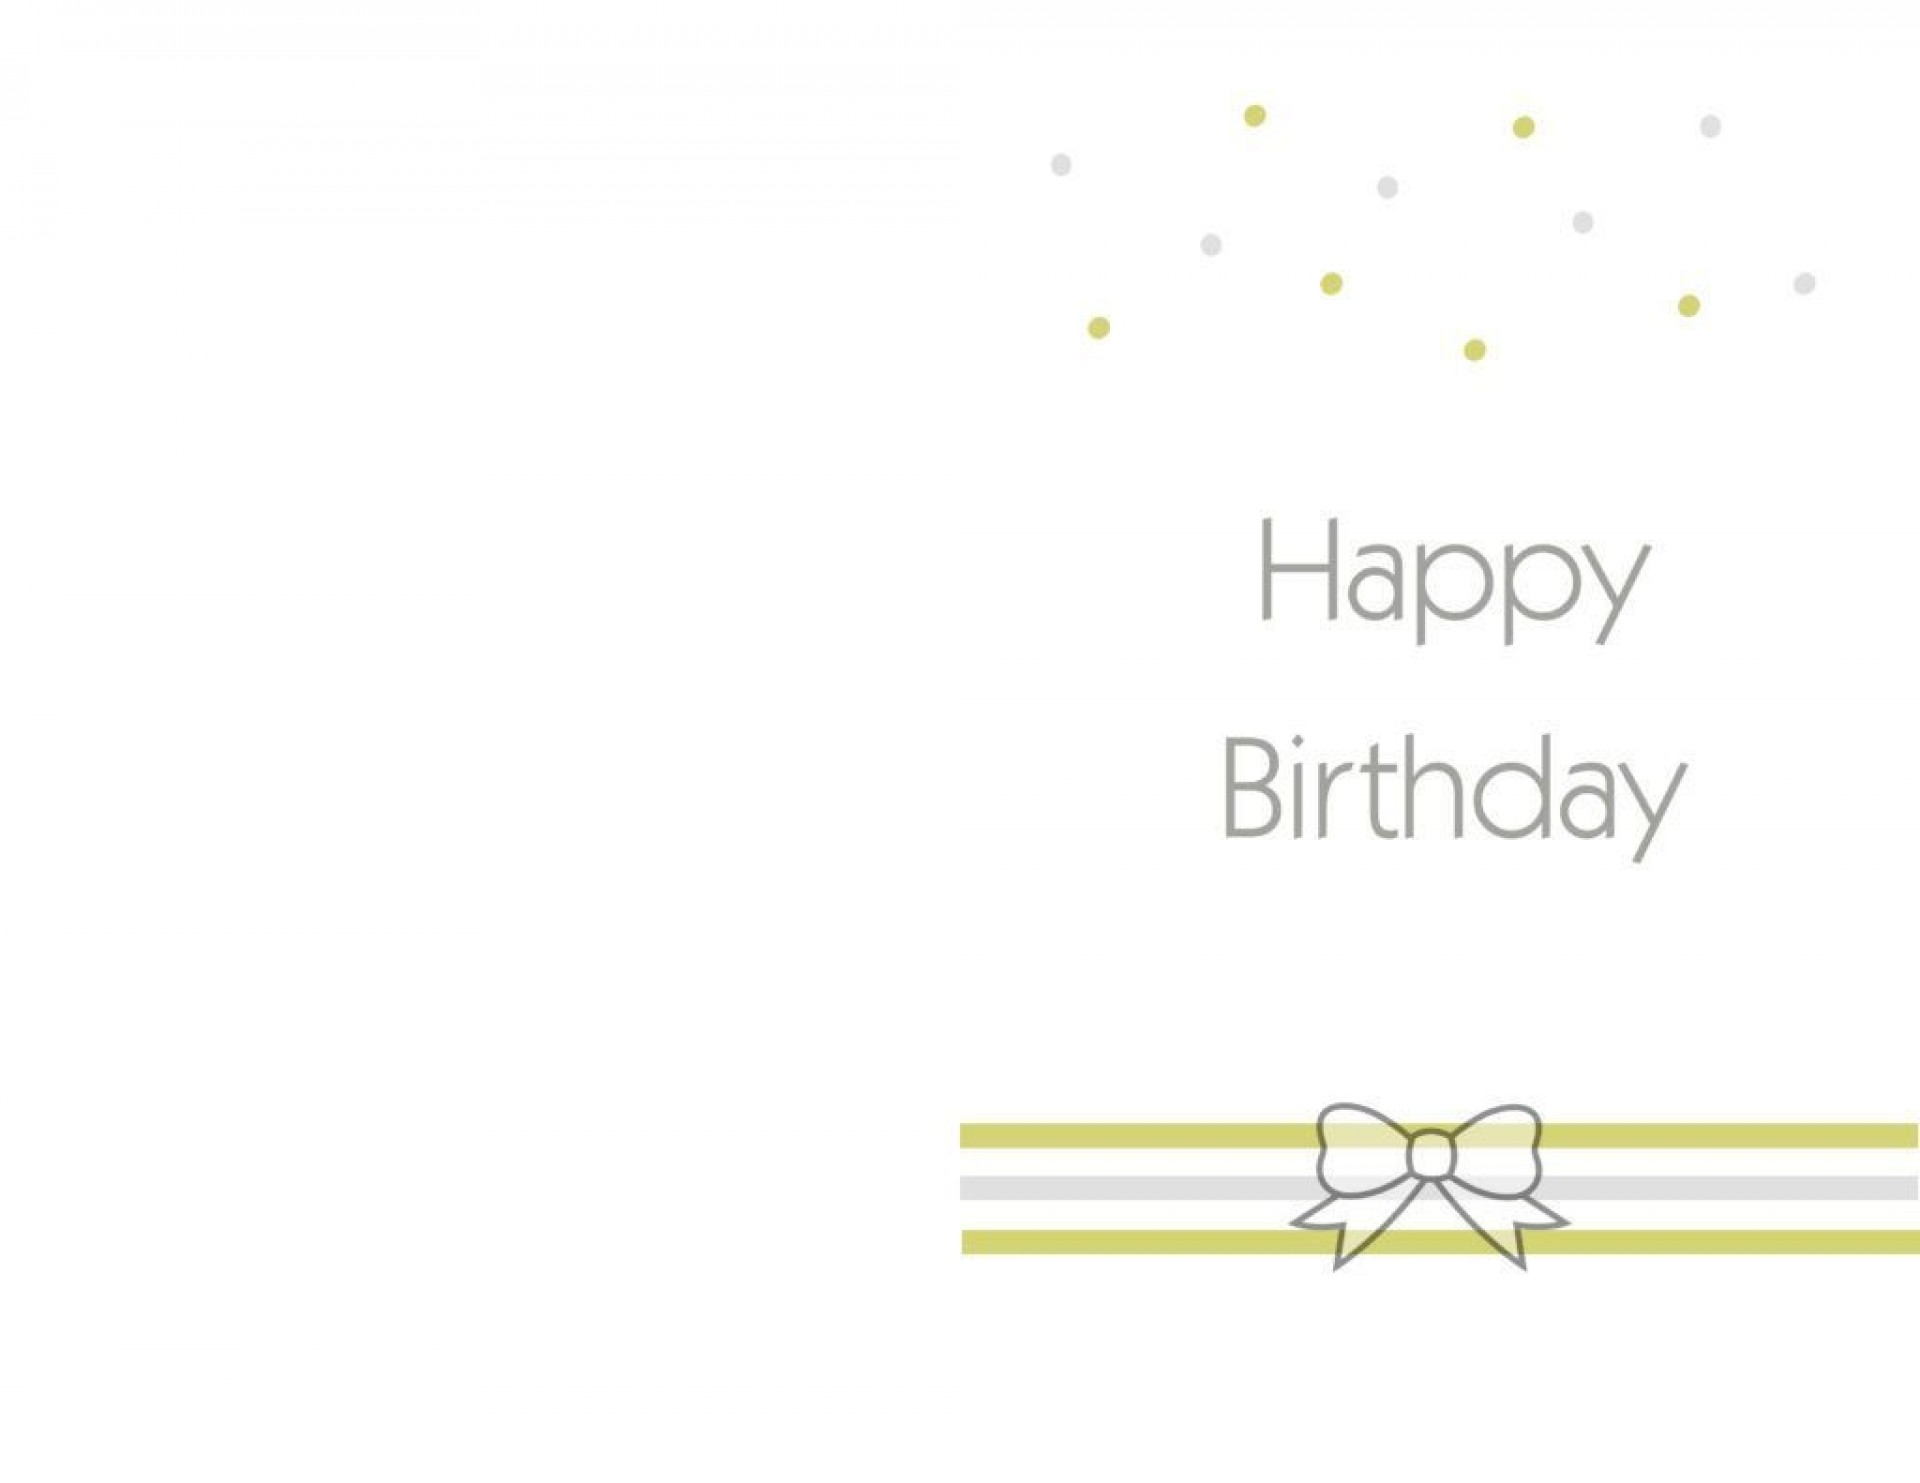 006 Staggering Free Printable Birthday Card Template For Mac Inspiration 1920